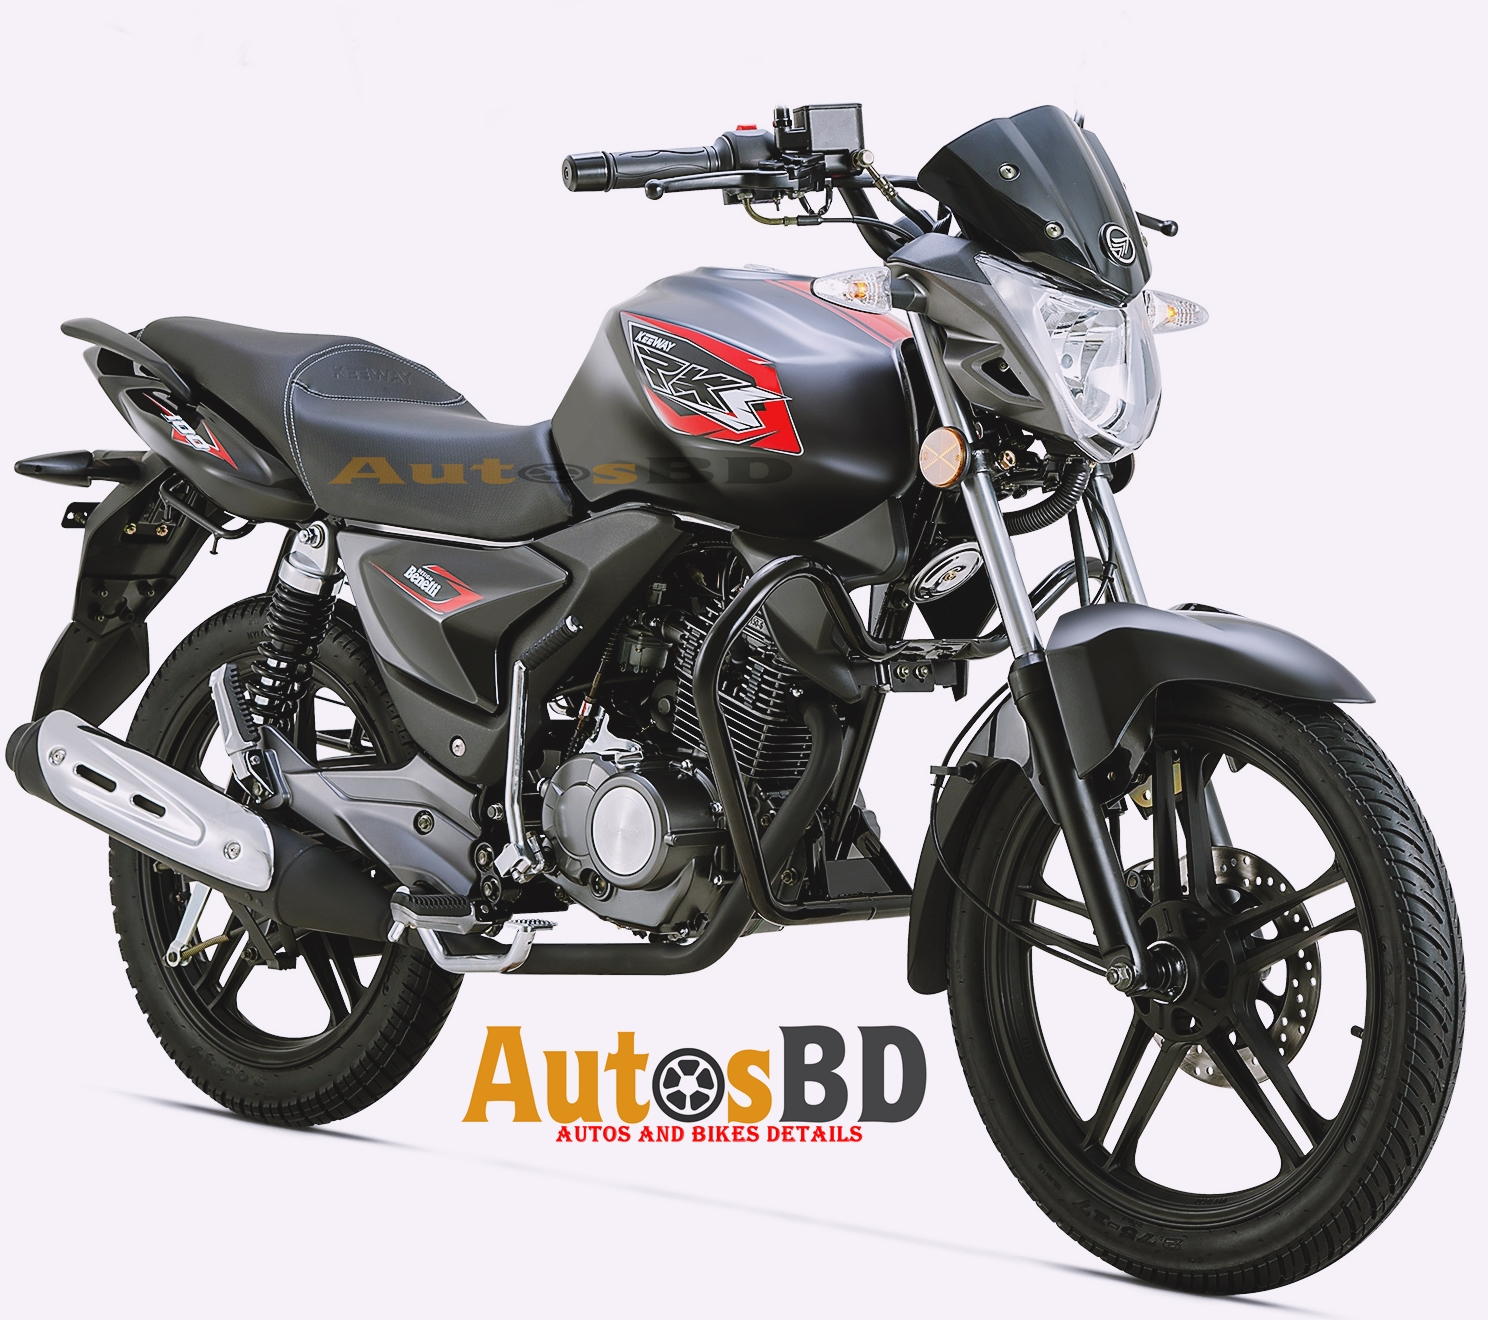 Keeway RKS 100 v3 Motorcycle Price in Bangladesh